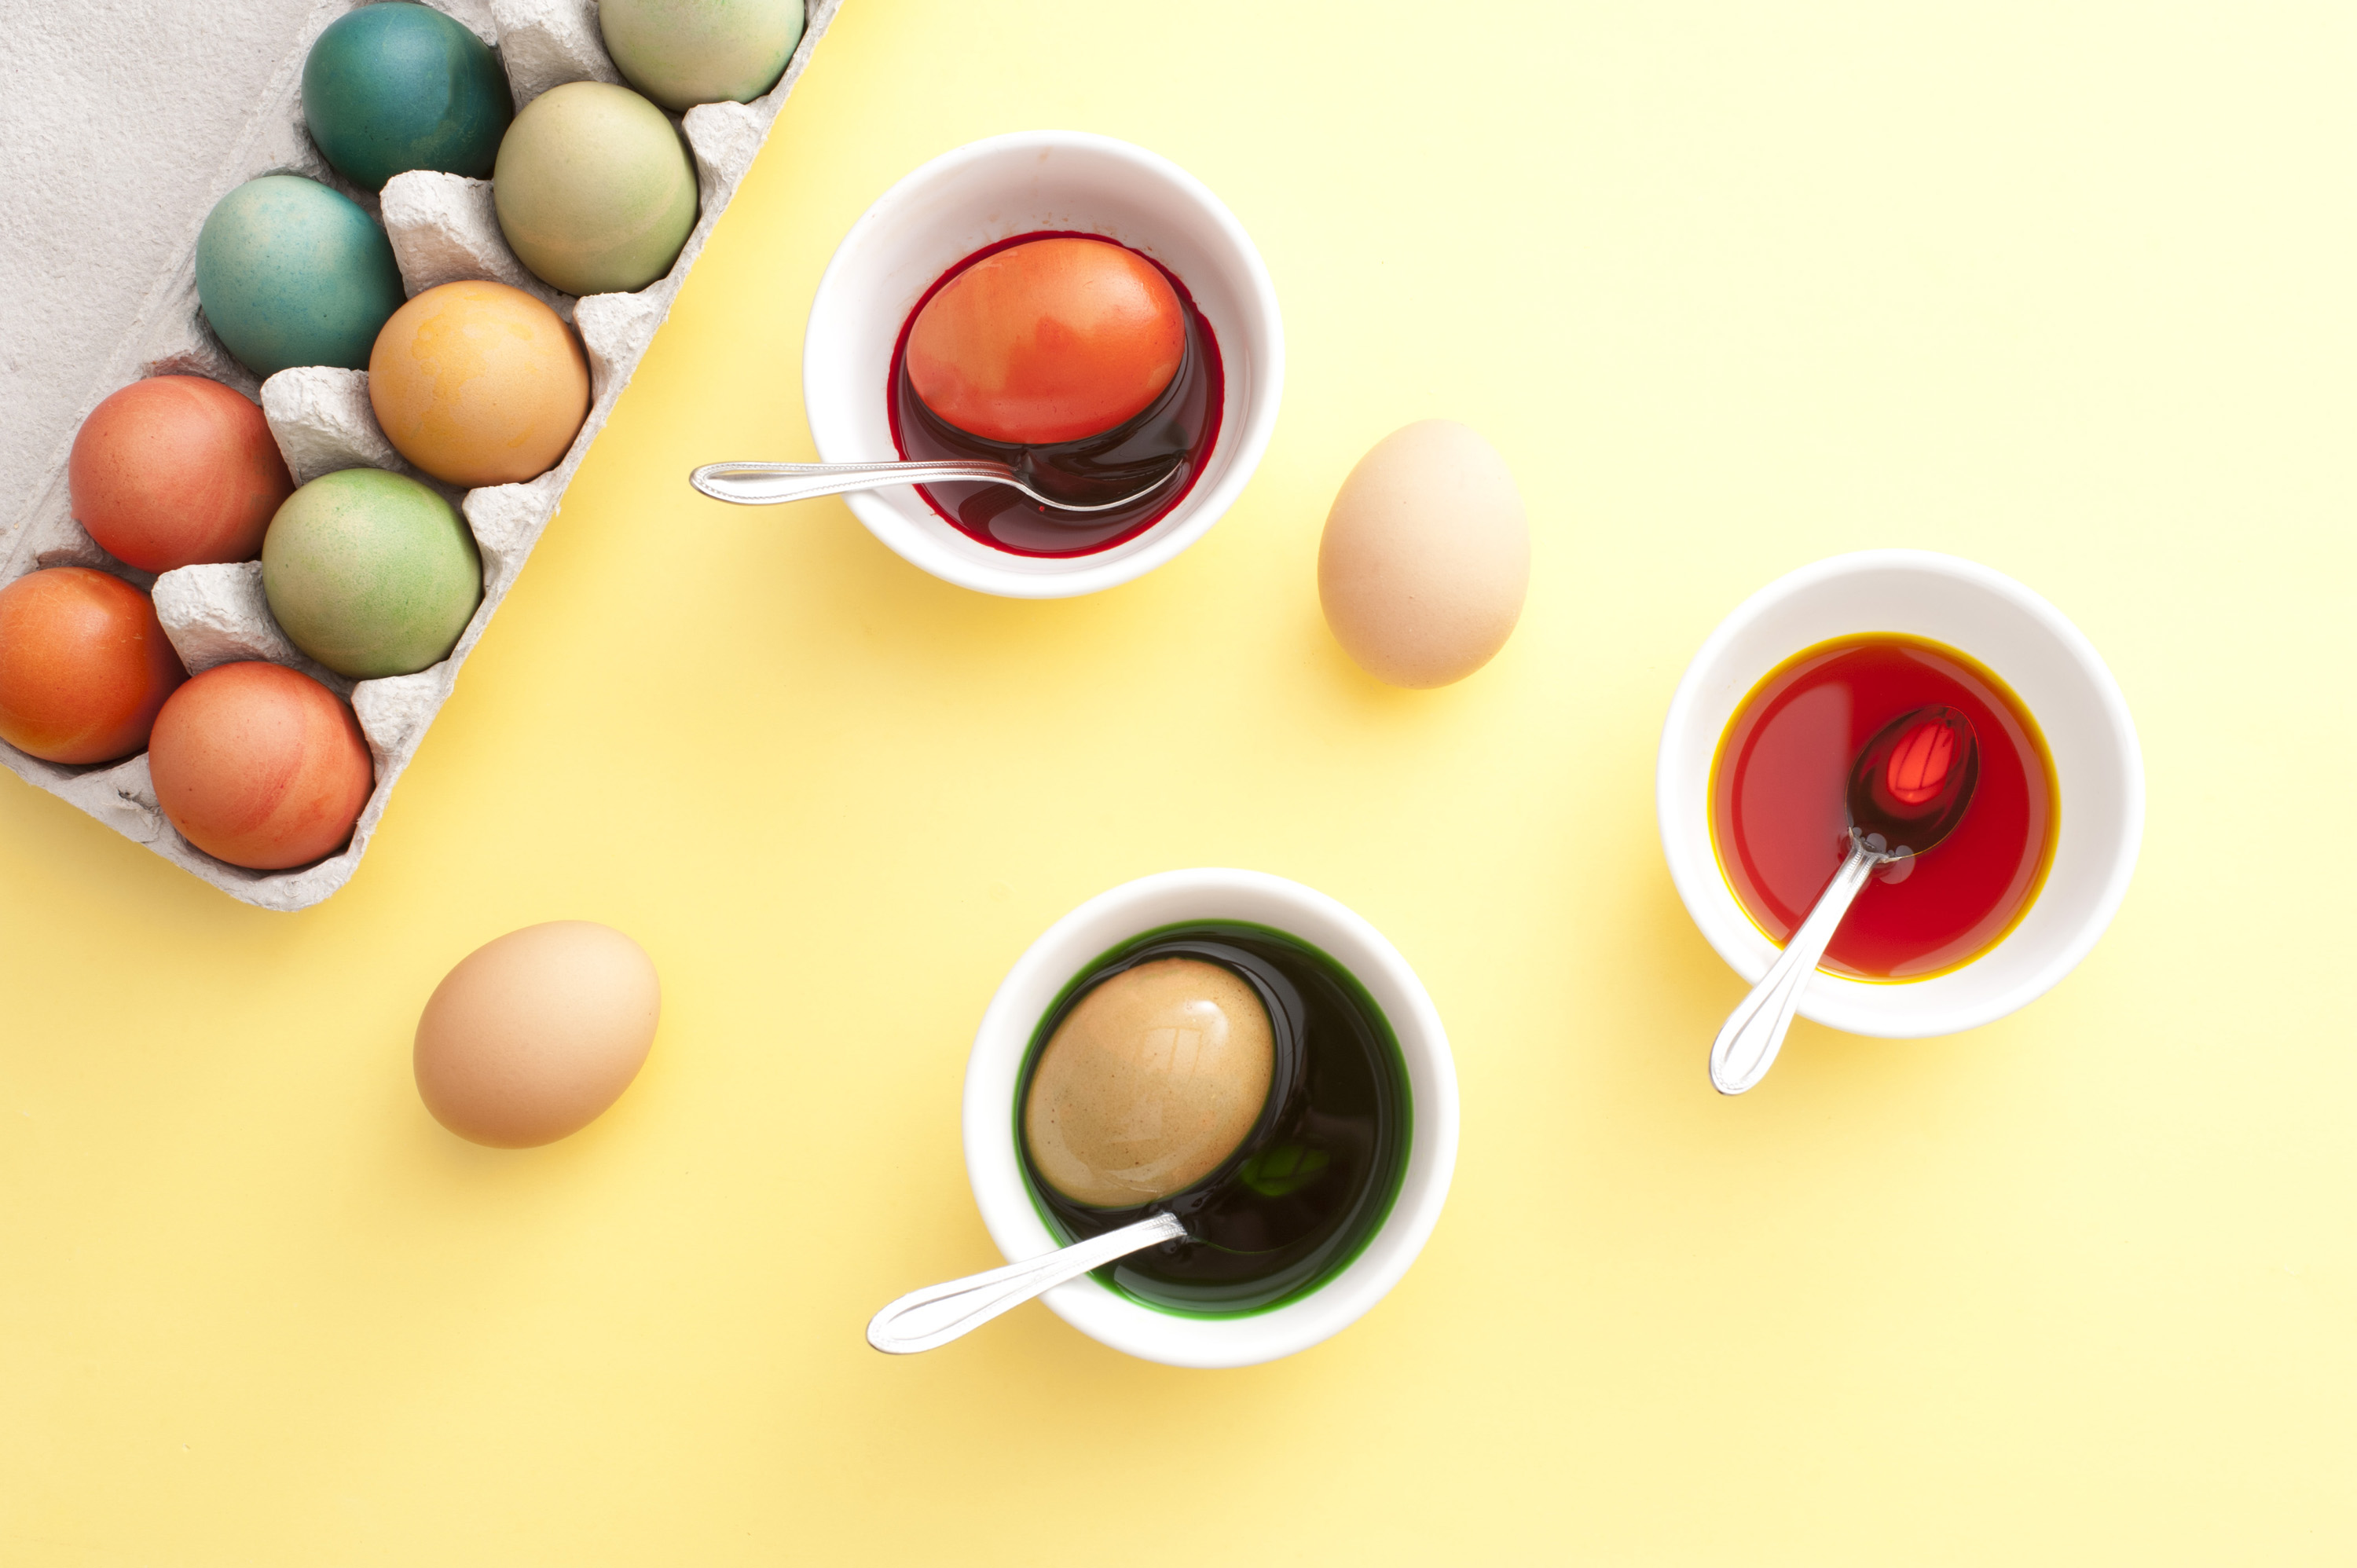 colouring_eggs.jpg - Overhead view of three bowls filled with dye beside a carton filled with colorful eggs